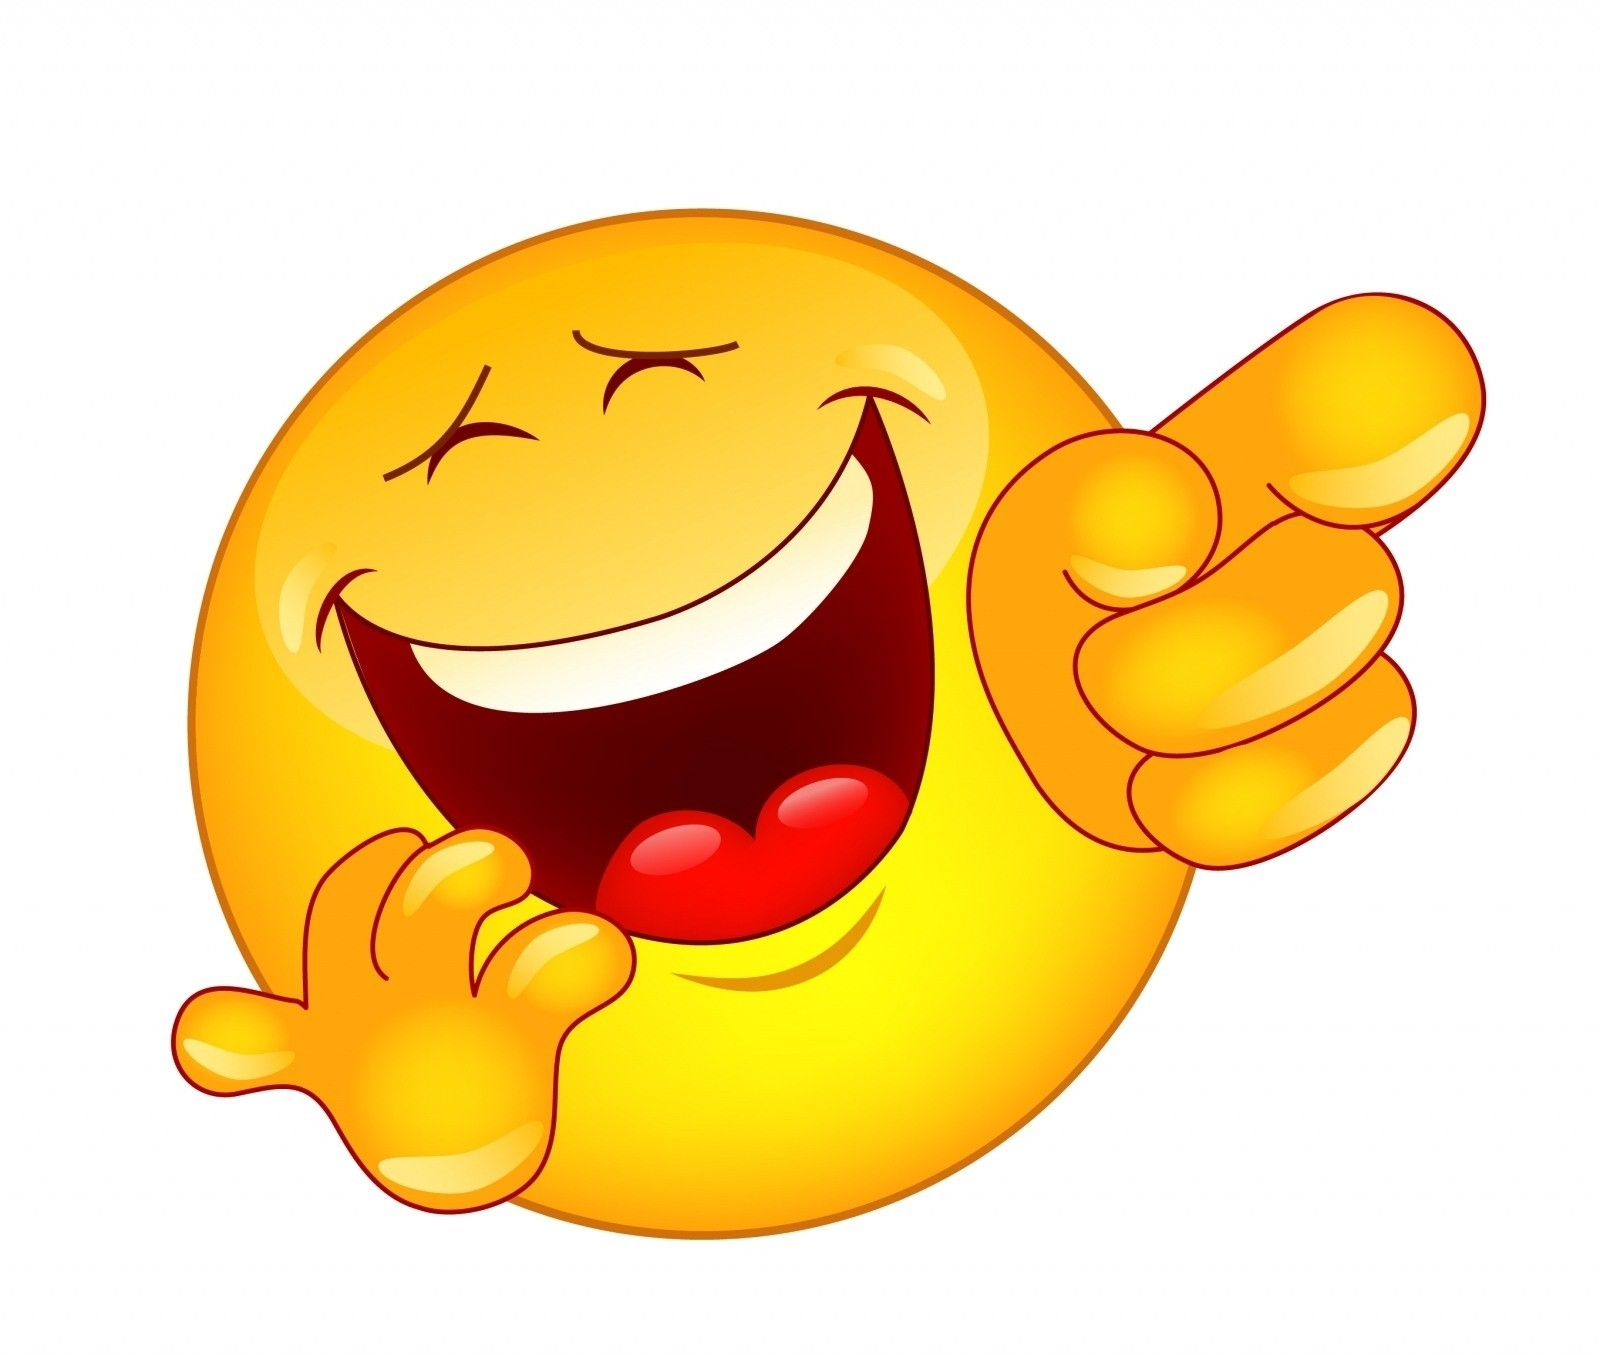 Animated Smiley Faces Laughing | World Of Example throughout Animated Smiley Faces Laughing 30543